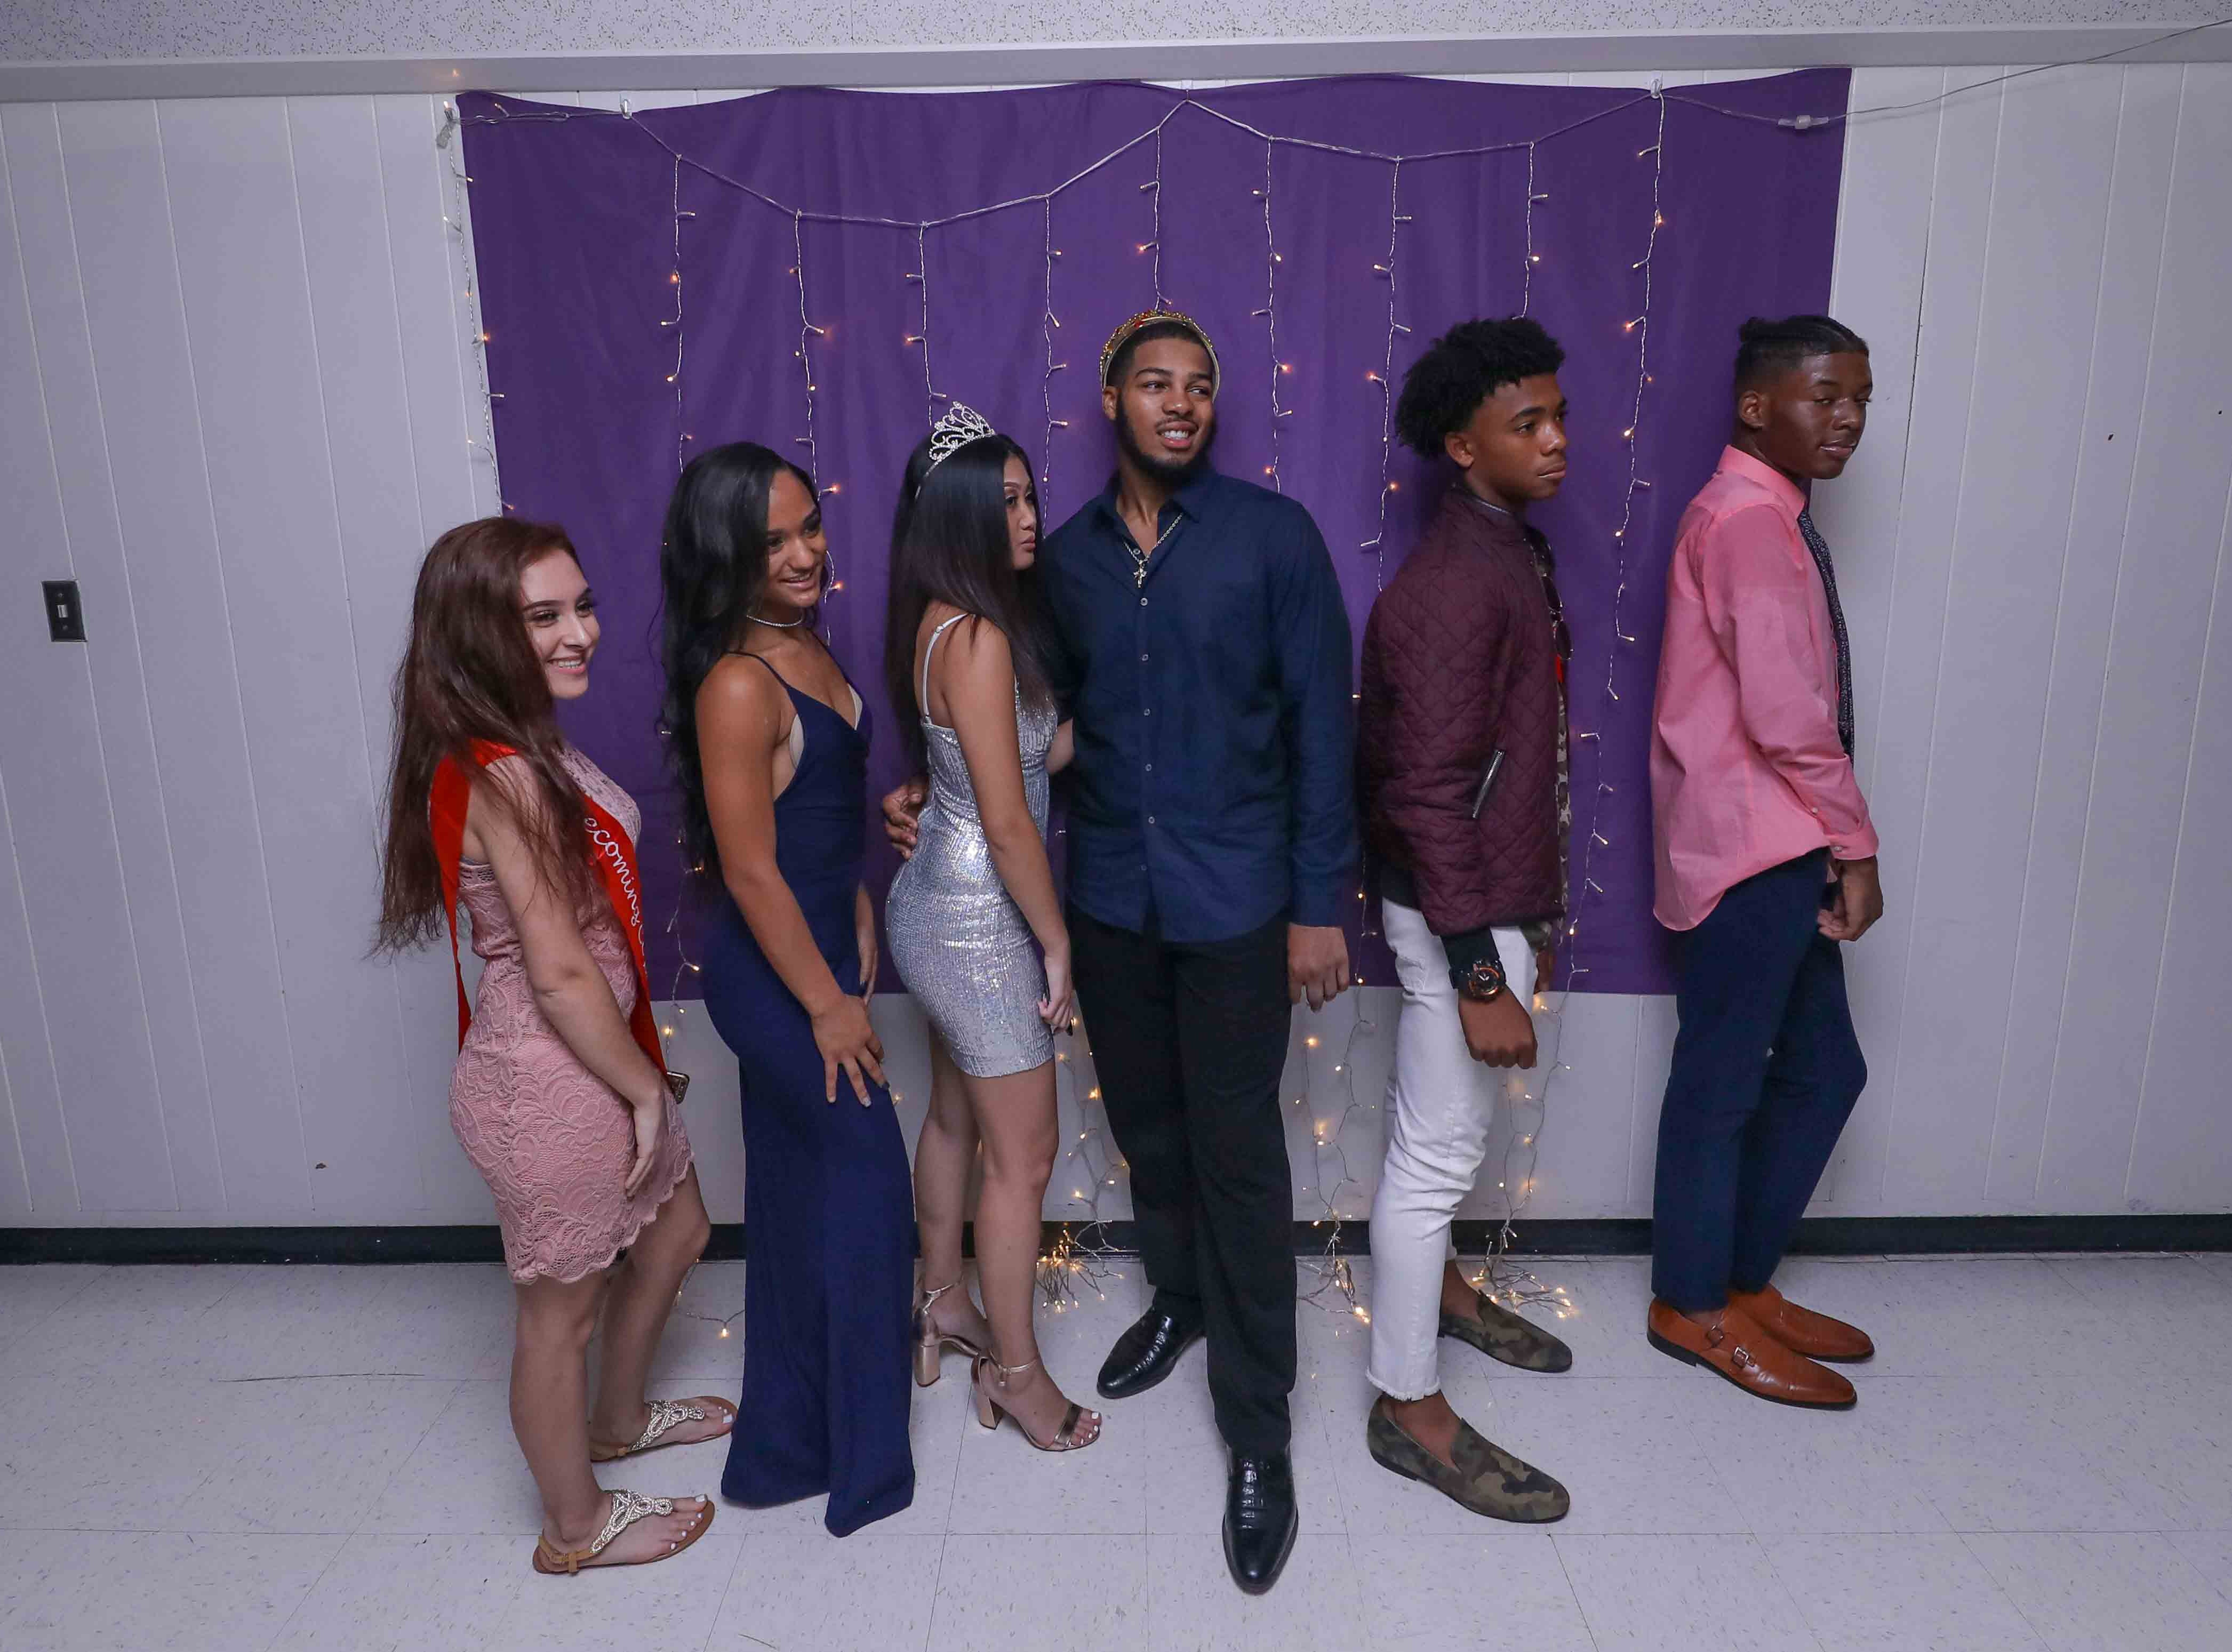 Students and their guest attend Glasgow High School homecoming dance Saturday, Oct 06, 2018, at Howard High School of Technology in Wilmington, DE.